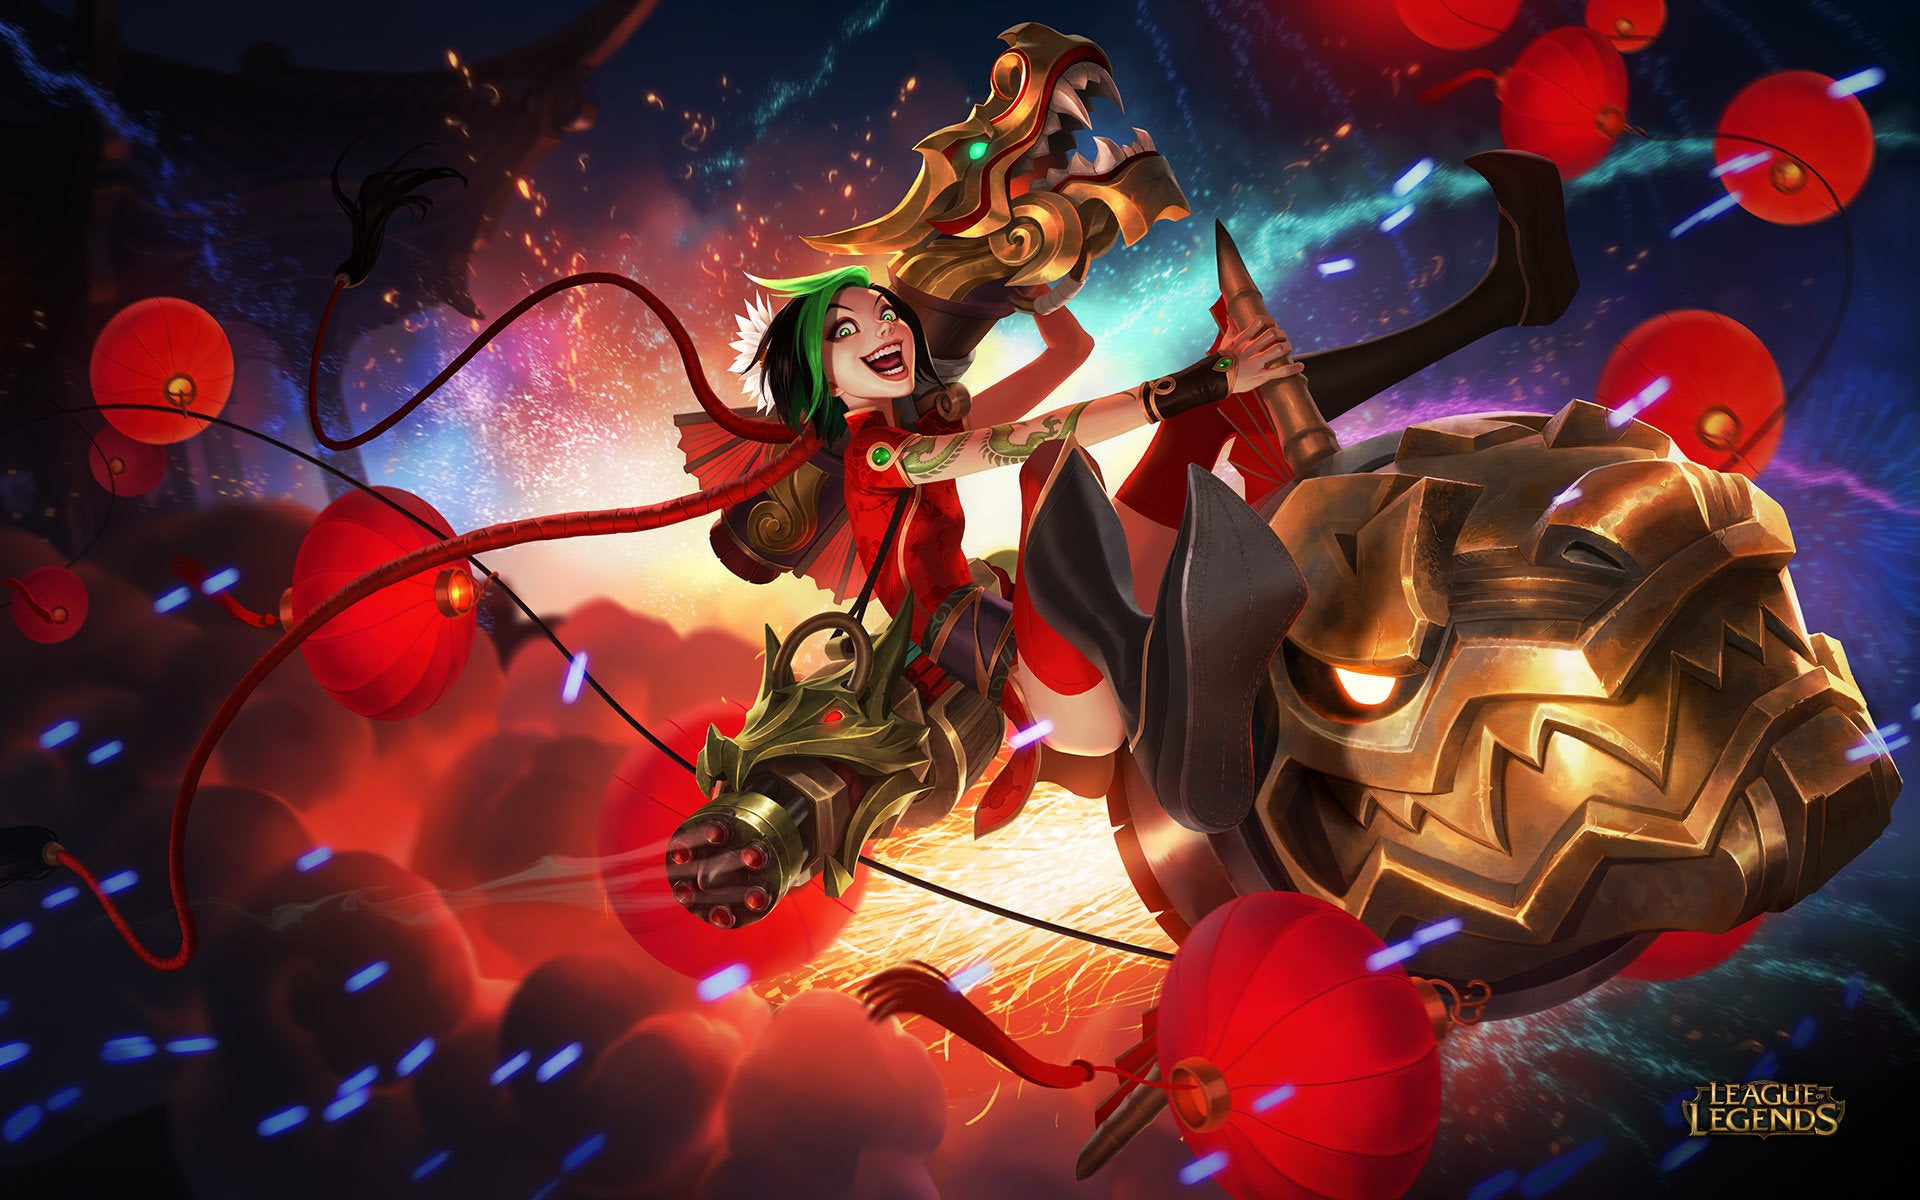 League Of Legends' Character Designs Are Awesome